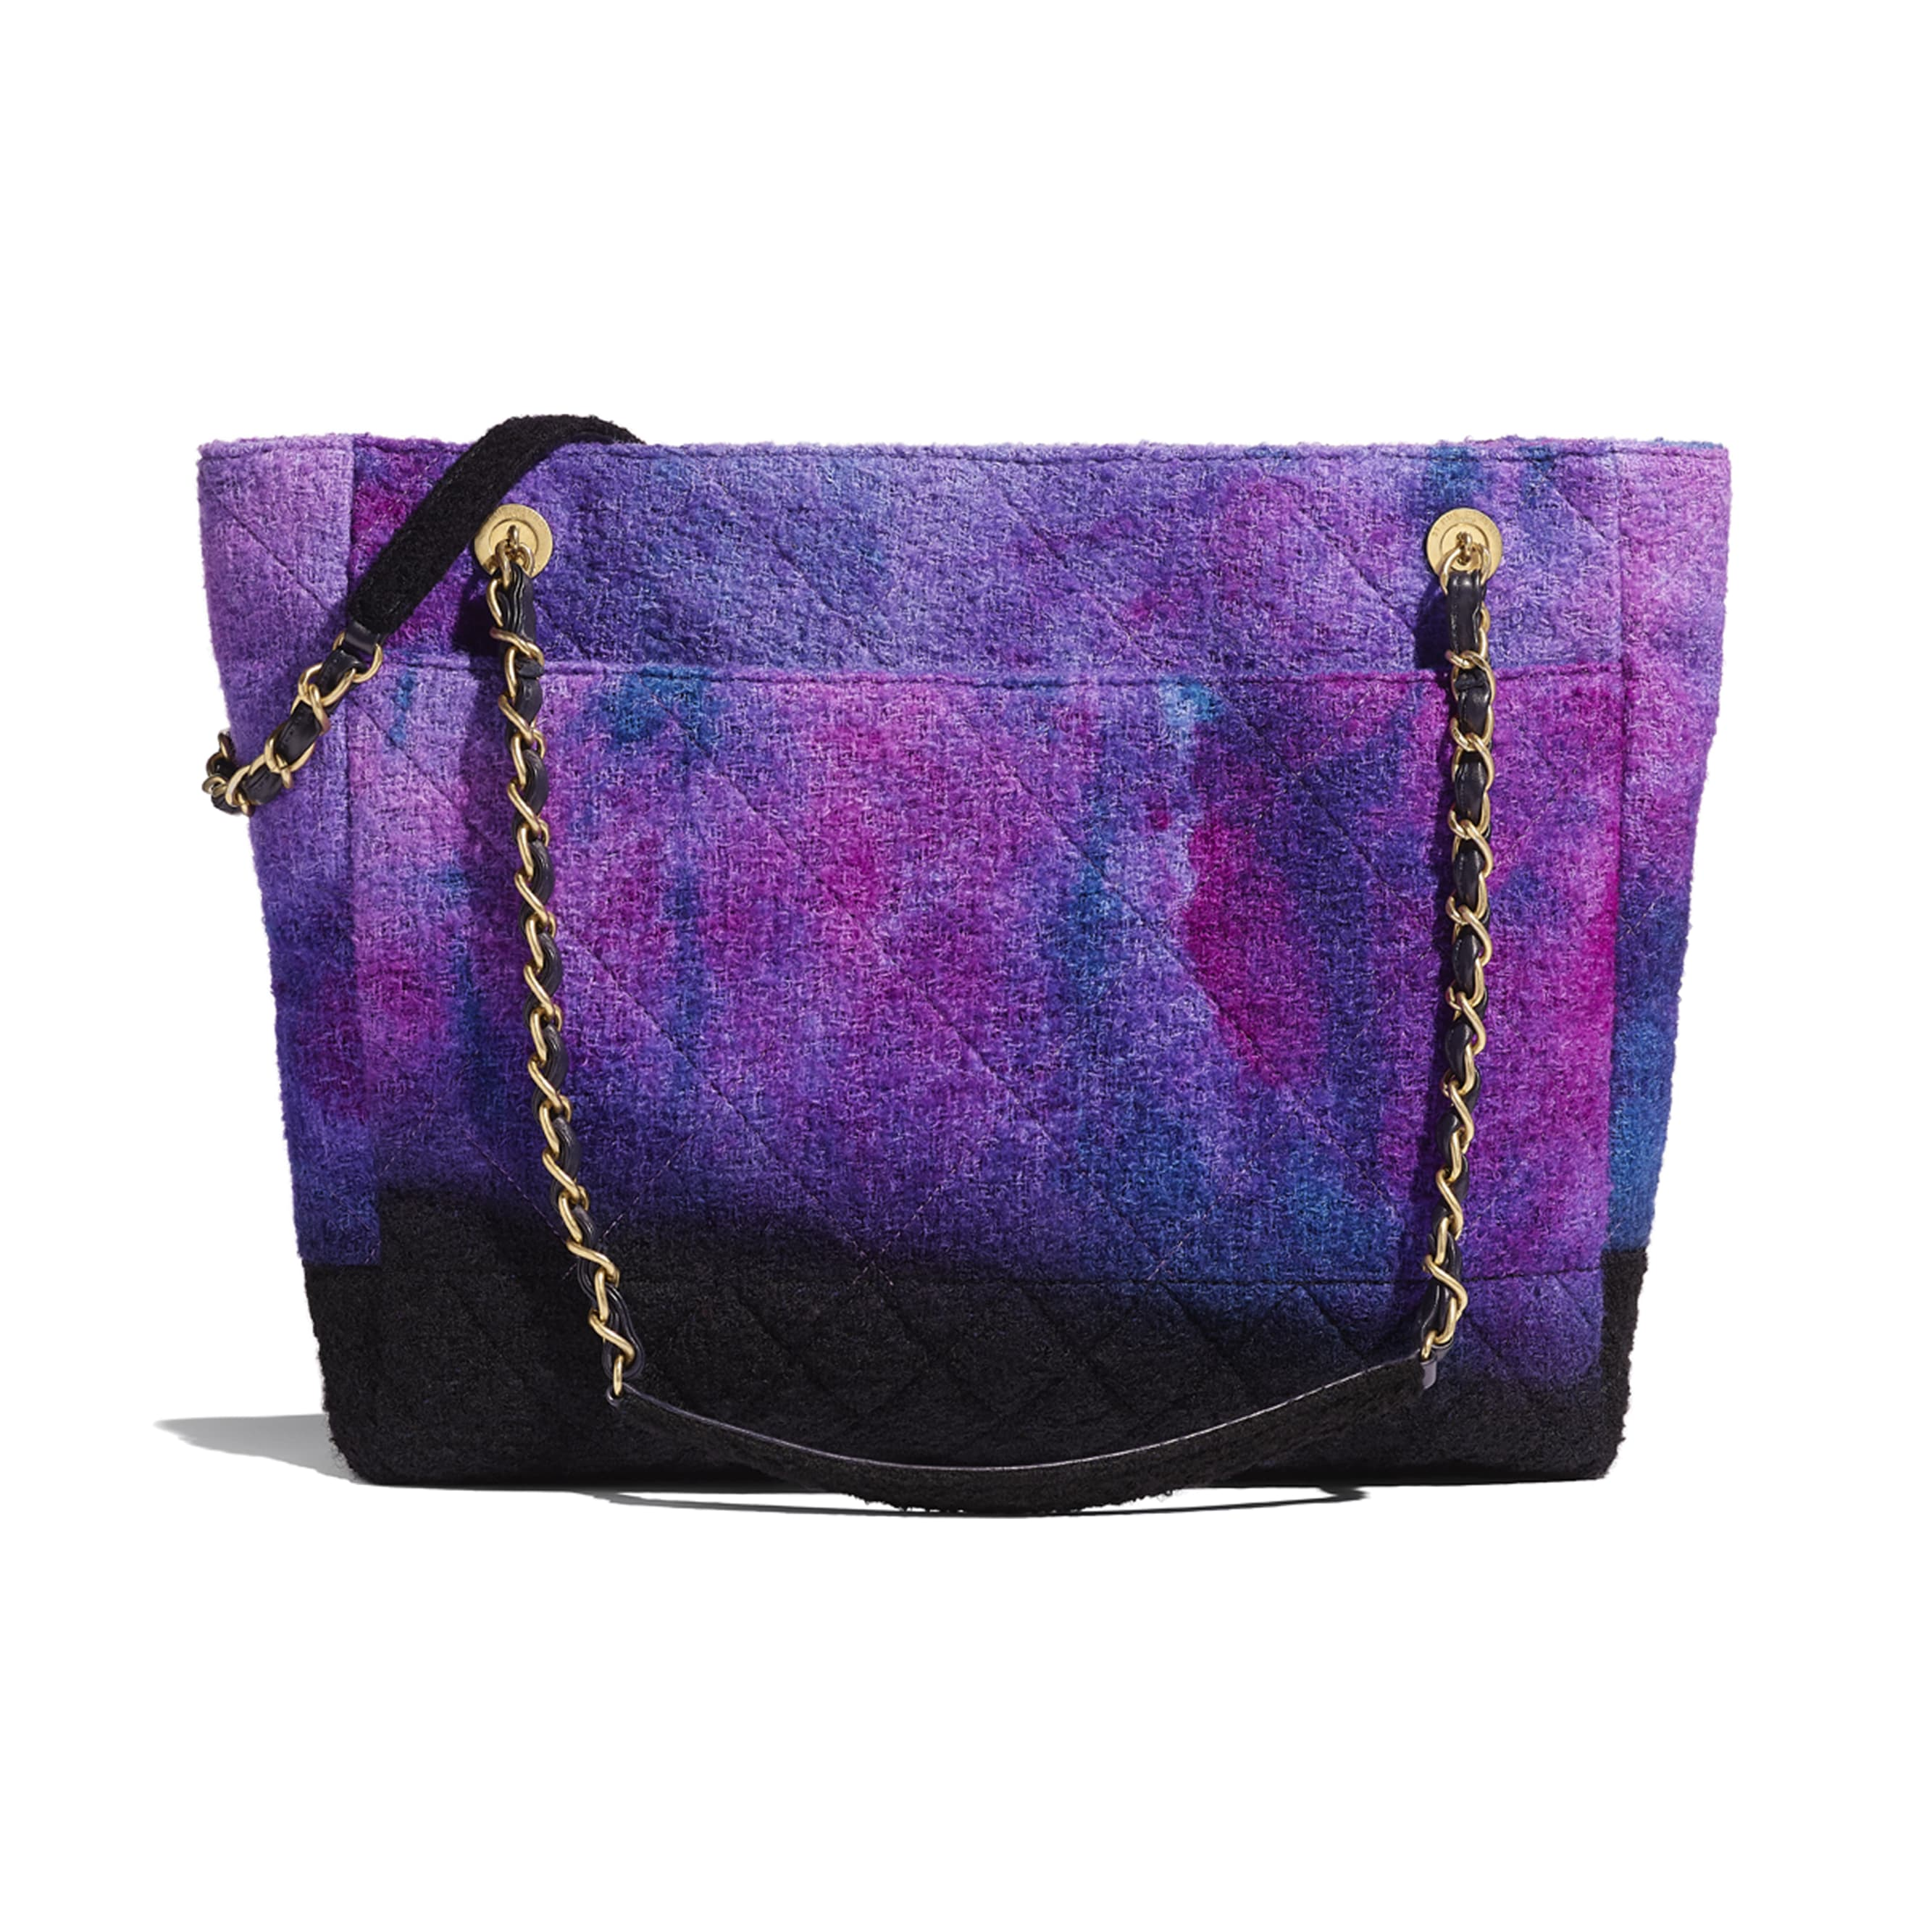 Large Tote - Purple, Black & Blue - Wool Tweed & Gold-Tone Metal - CHANEL - Alternative view - see standard sized version